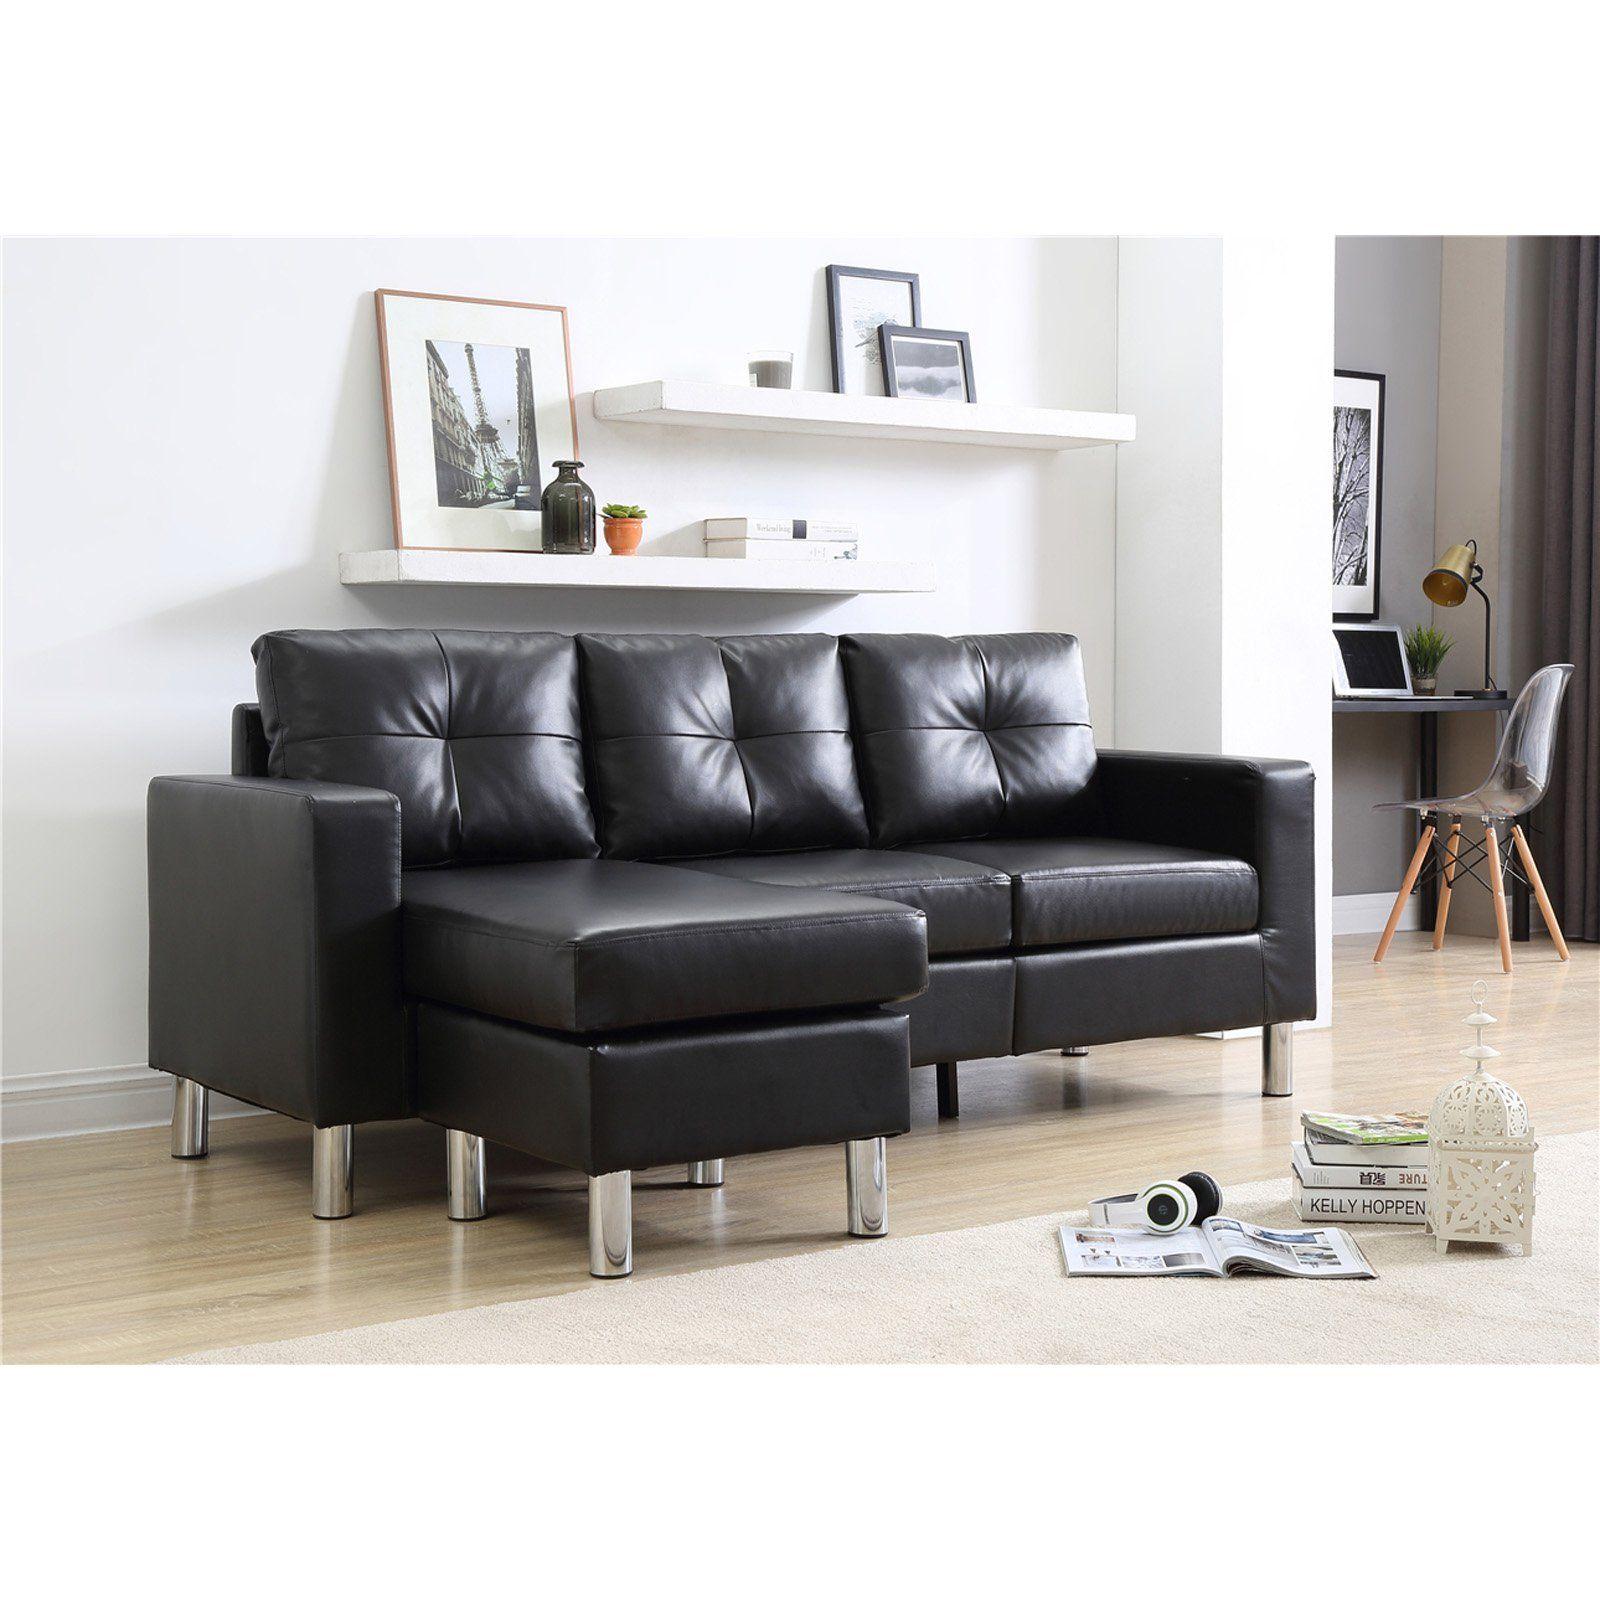 Nh Designs Small Space Convertible Sectional Sofa Black Sectional Sofa Couch